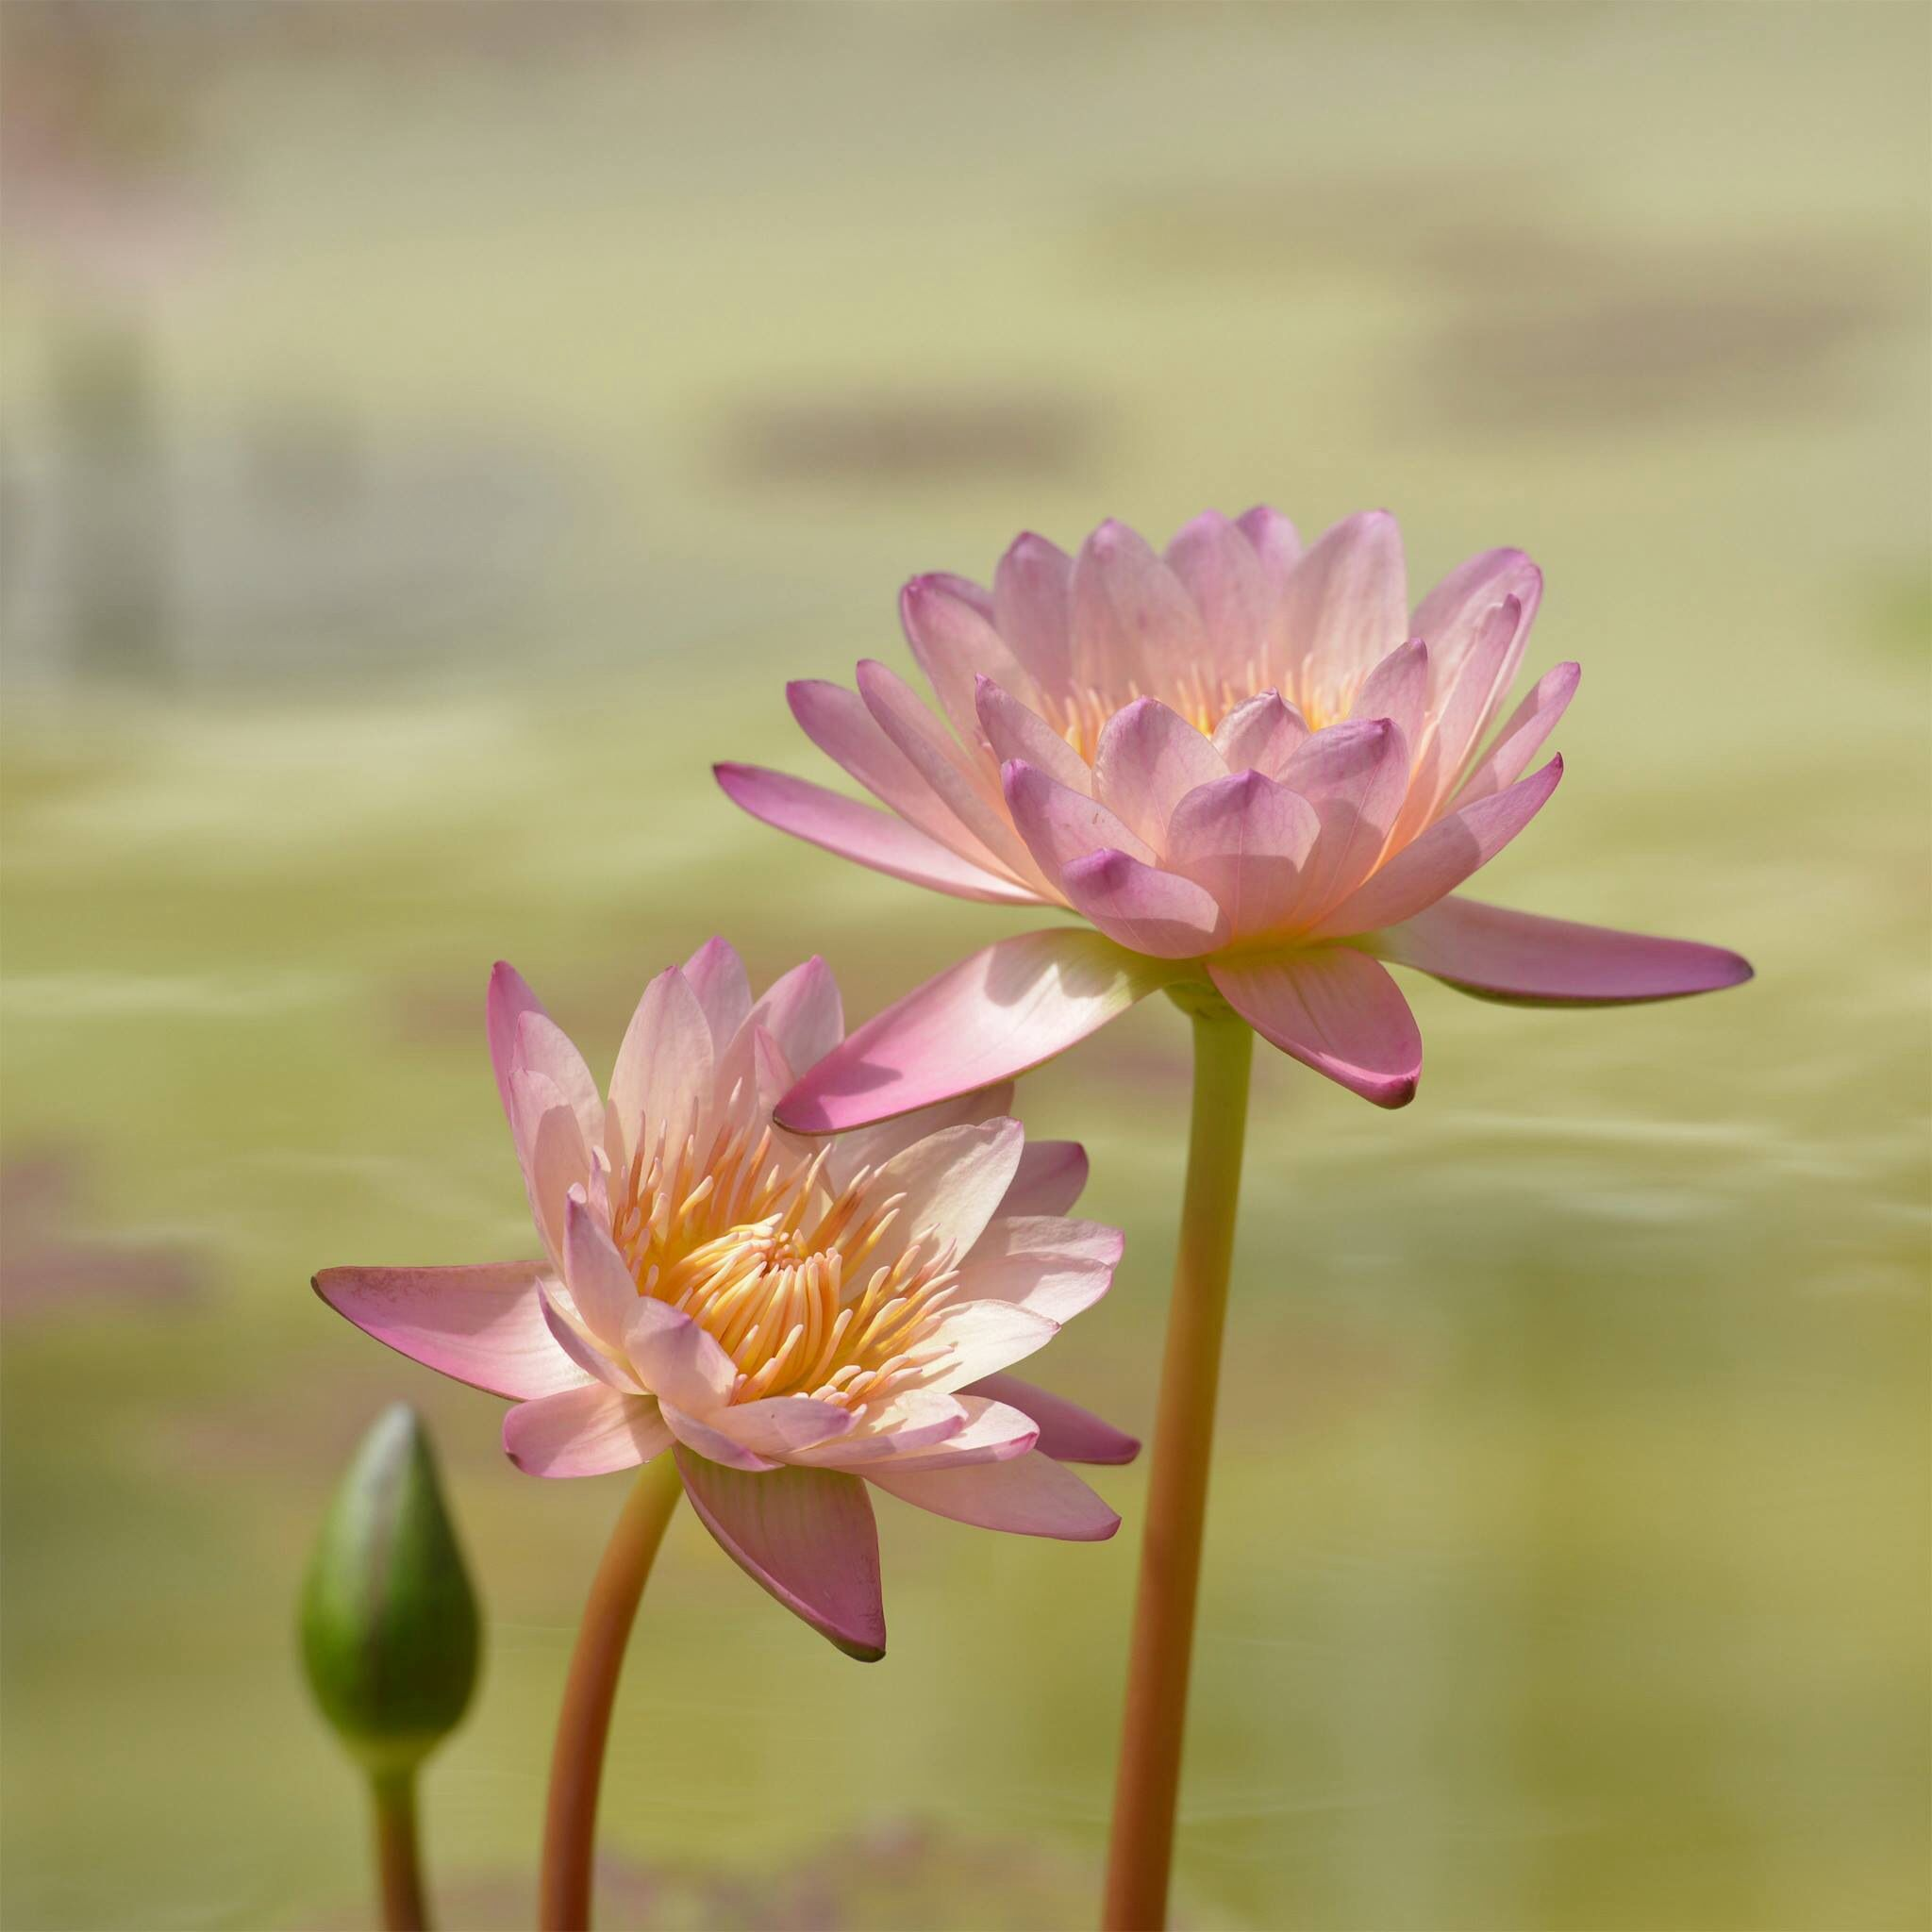 Beauty Asian flowers, Water lilies, Lily lotus